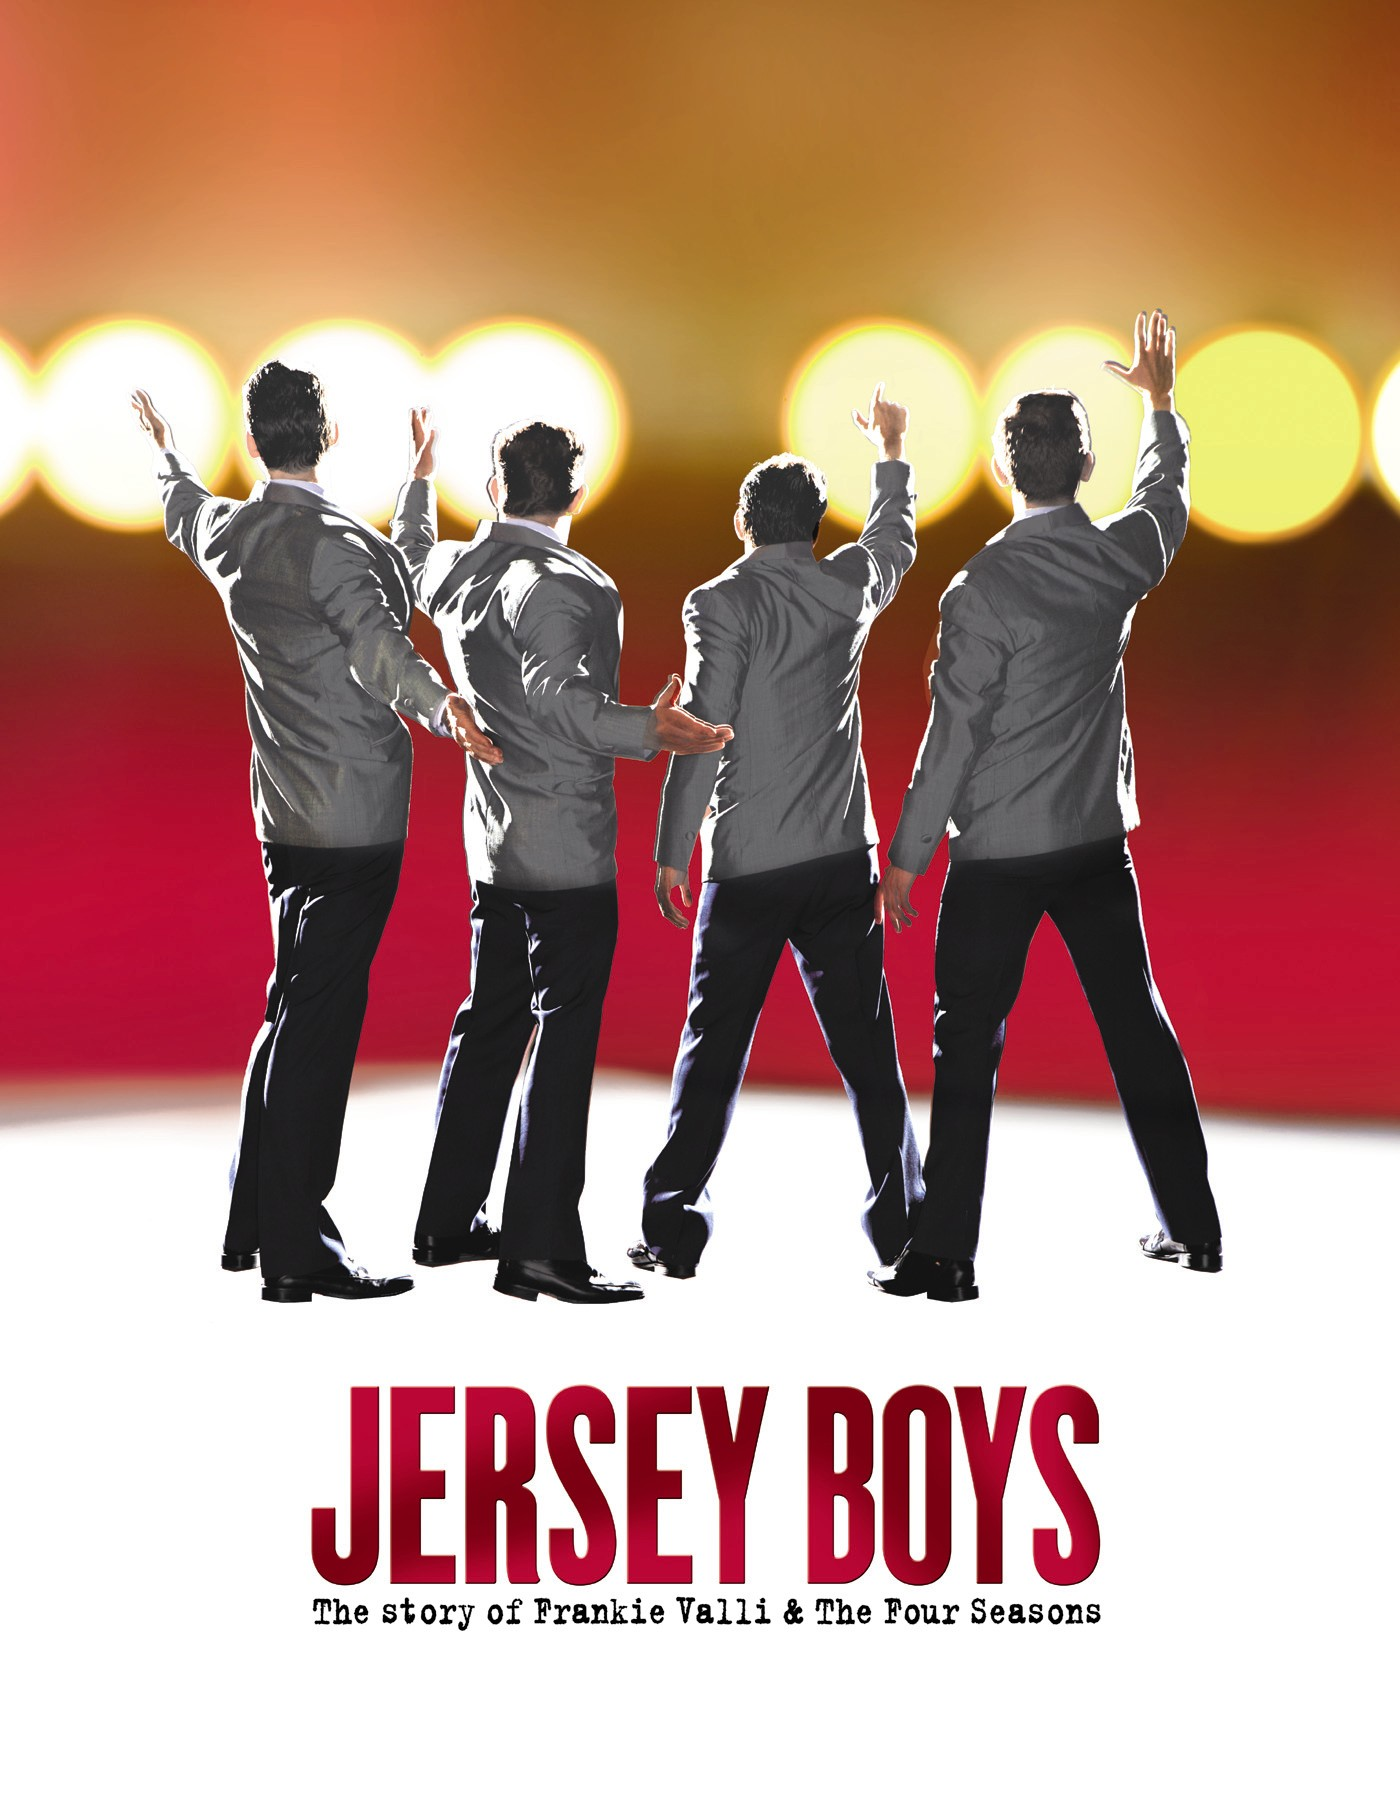 Jersey-Boys-Tour-Poster-Frankie-Valli-Four-Seasons